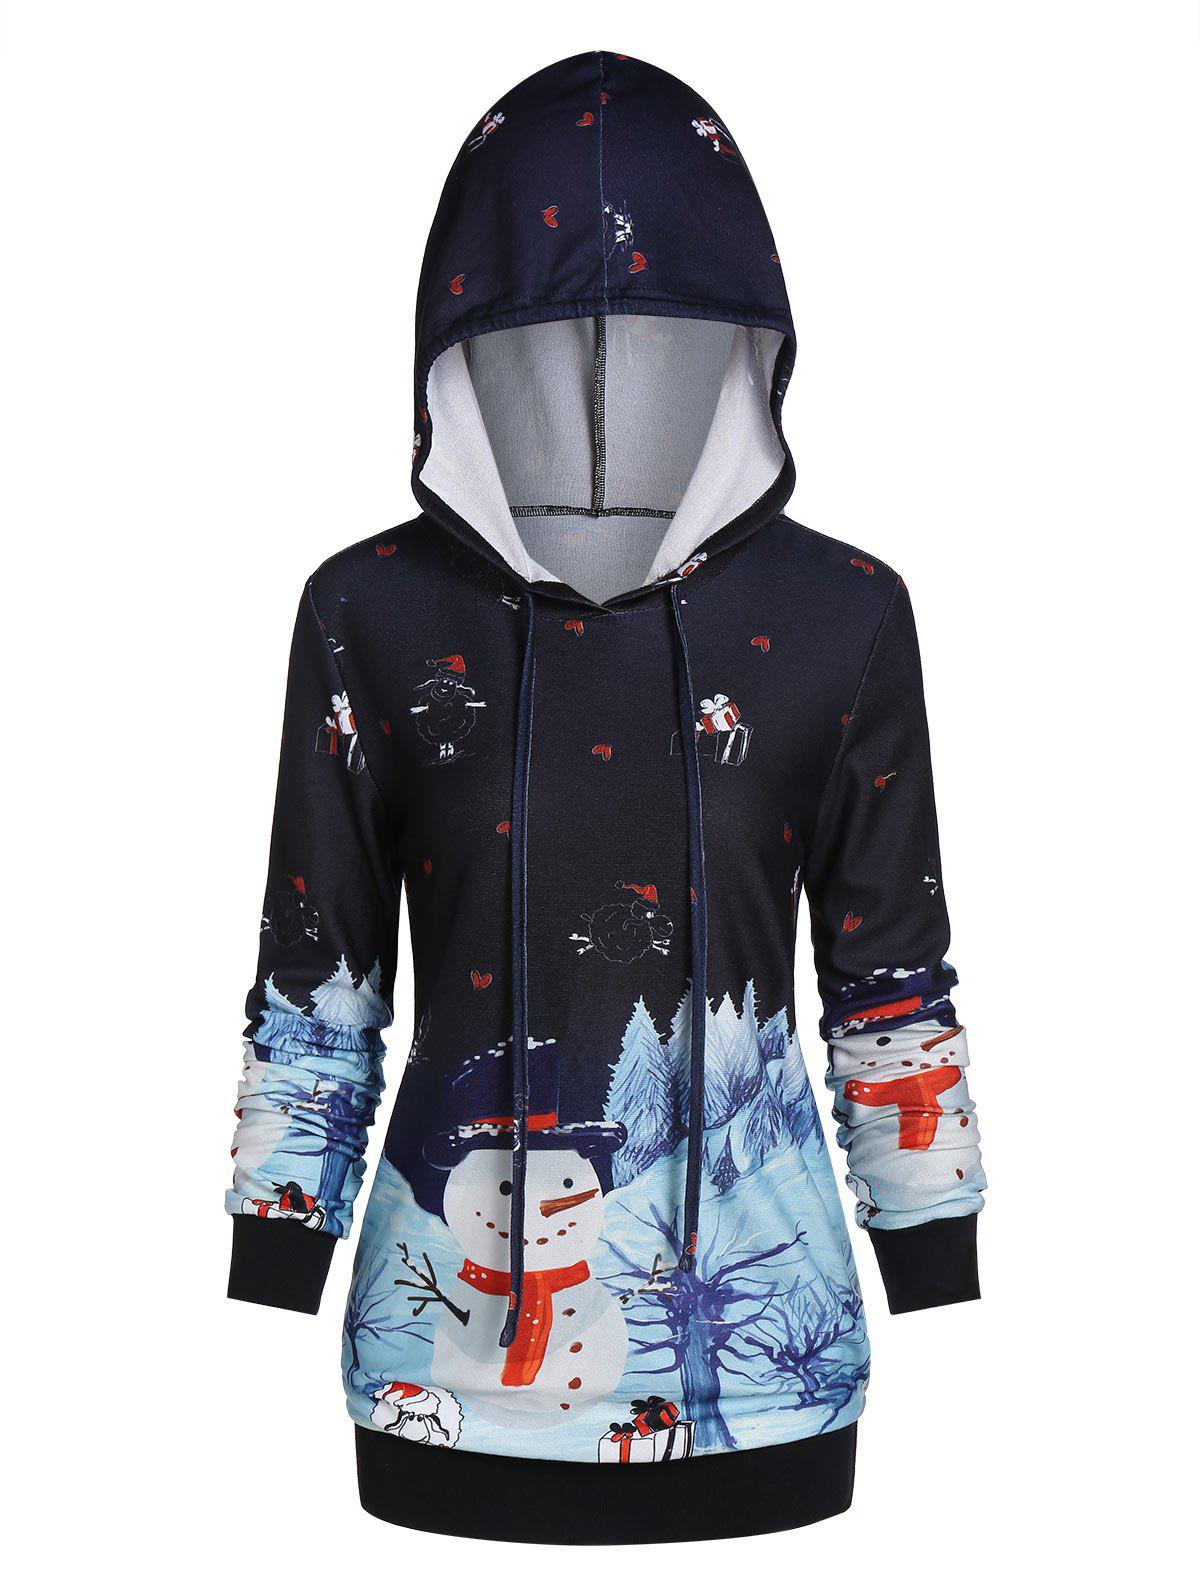 Christmas Snowman Printed Pullover Hoodie - multicolor A 3XL